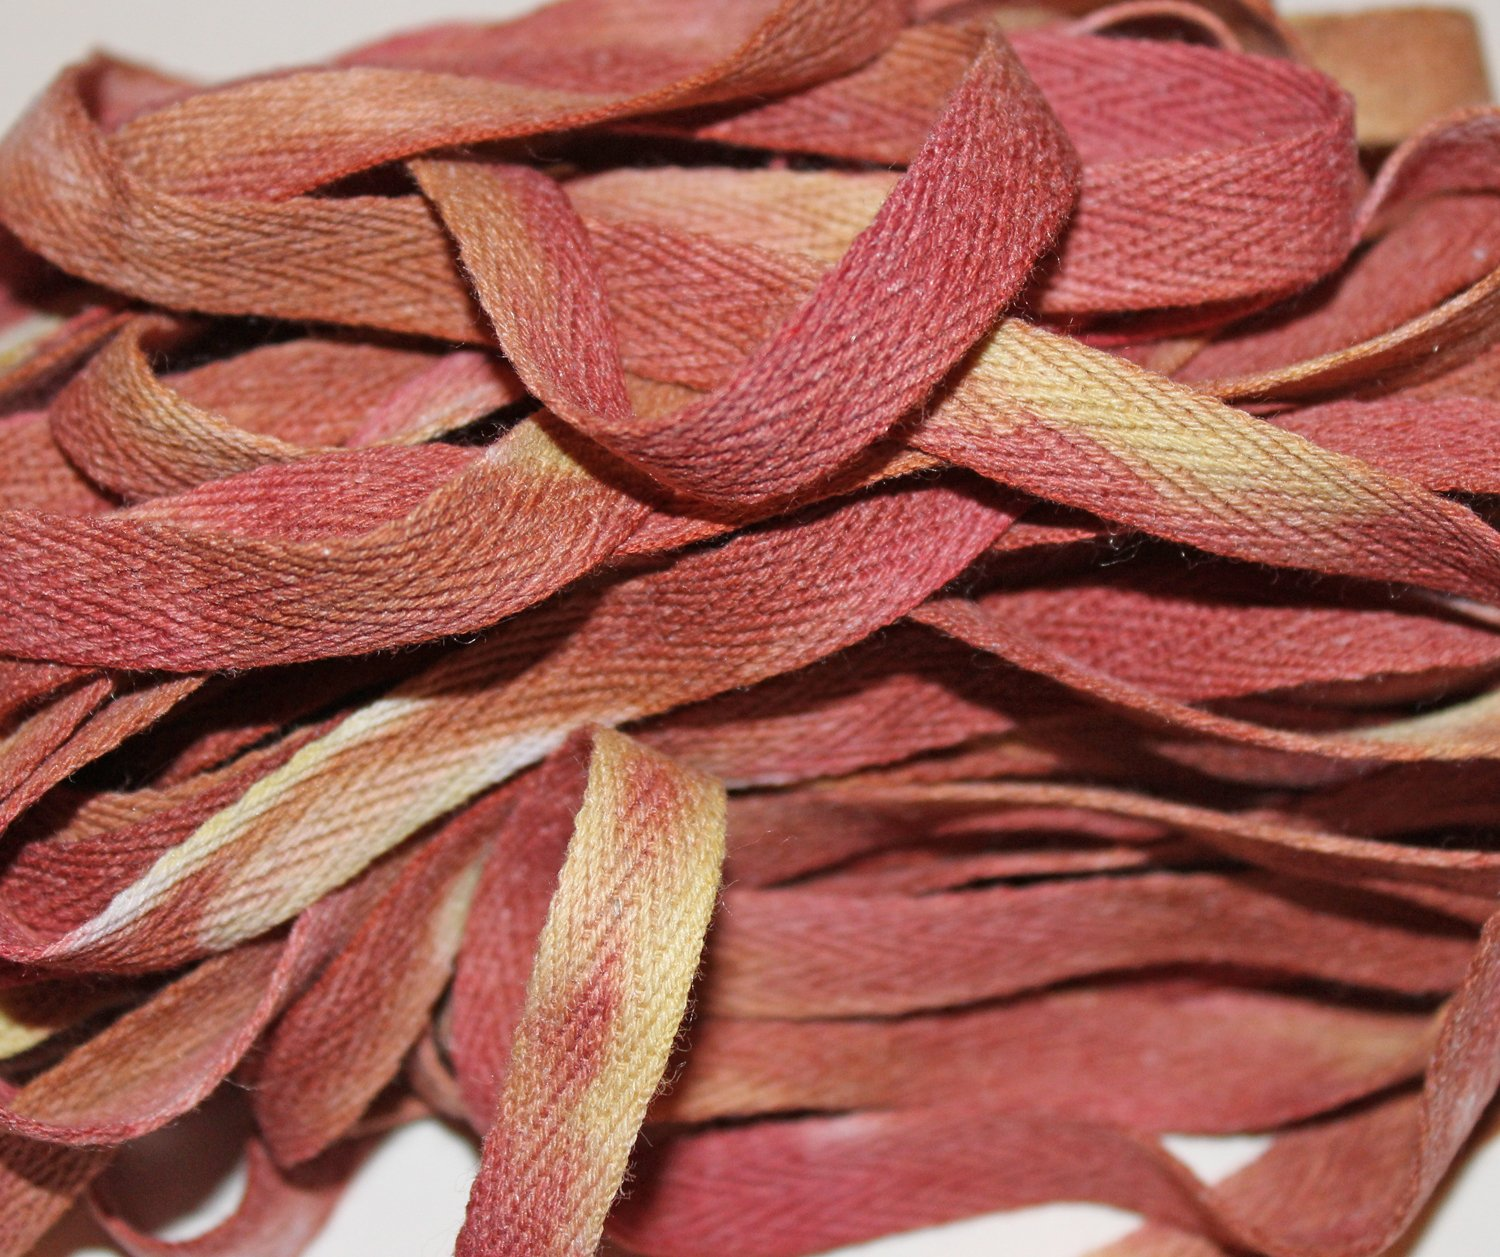 Tuscan Sunset - Hand-dyed Cotton Twill Tape 3/8 wide